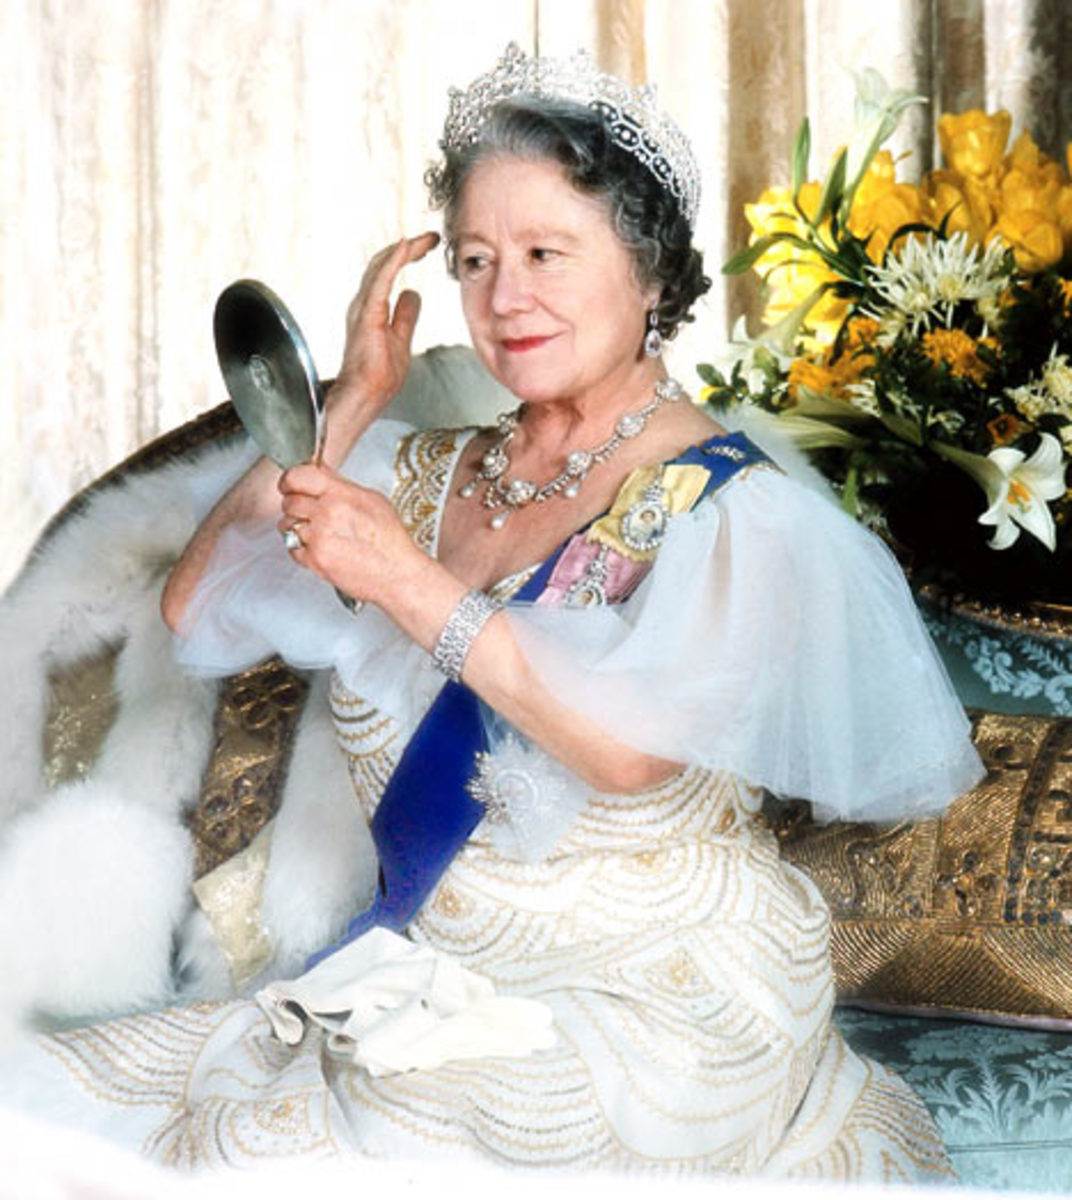 Queen Mother photo courtesy of dailymail.co.uk